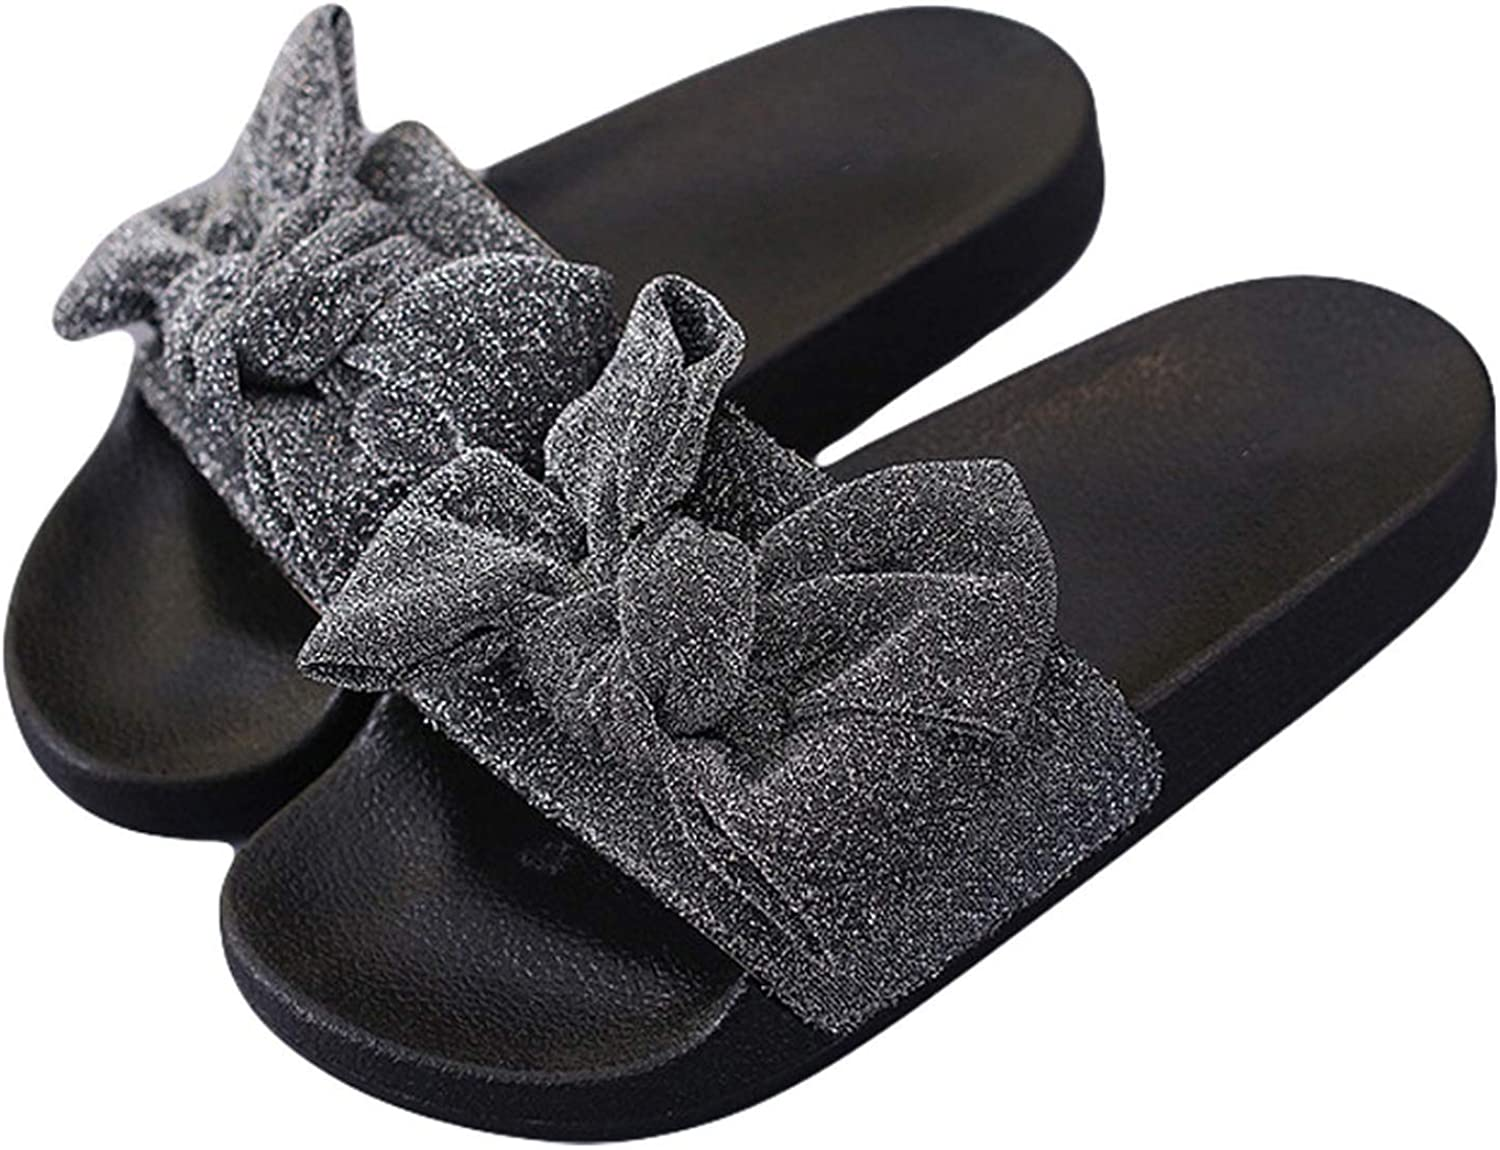 New Summer Women Bow Slides Rihanna Flip Flops Cloth Bow Knot Sandals Flat Thick Bottom Outdoor Indoor Slippers Cute Beach Shoes,Gray,8